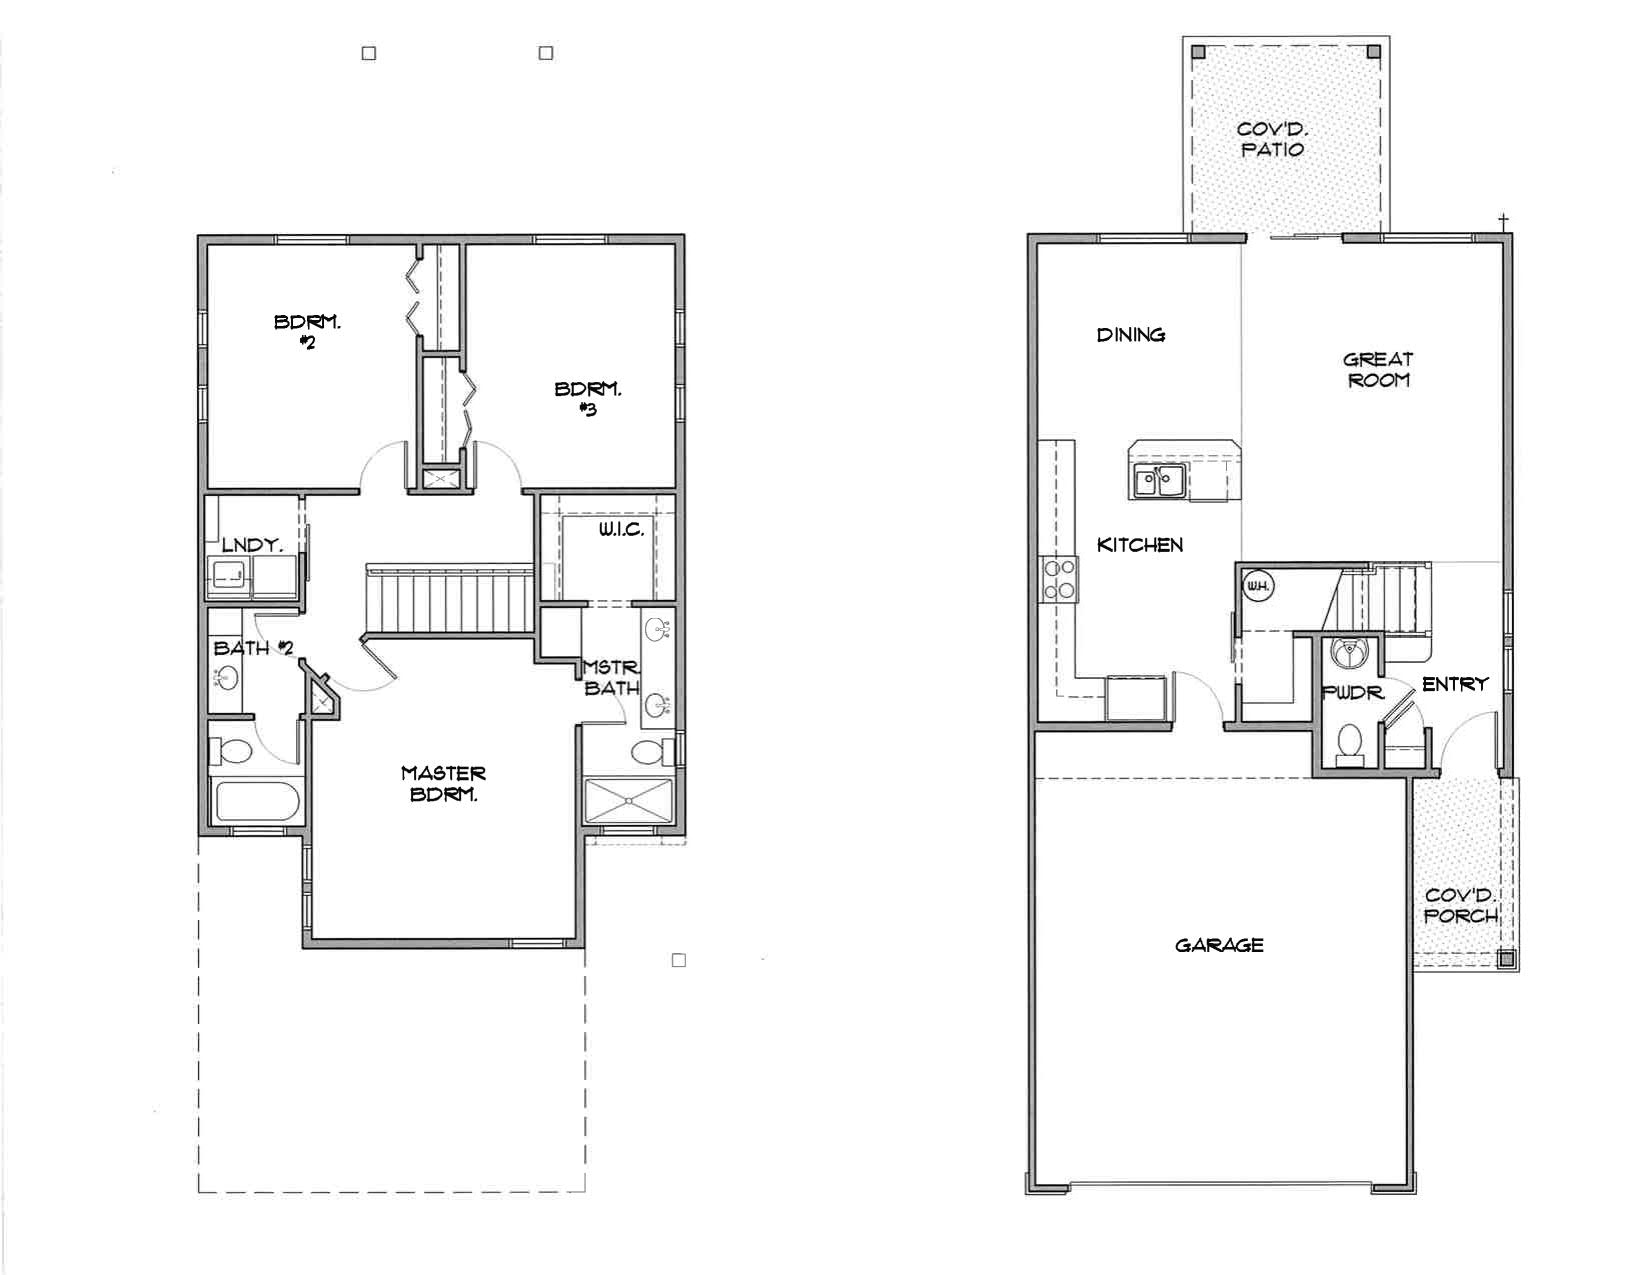 Floorplan elevations southcreek patio homes Patio homes floor plans